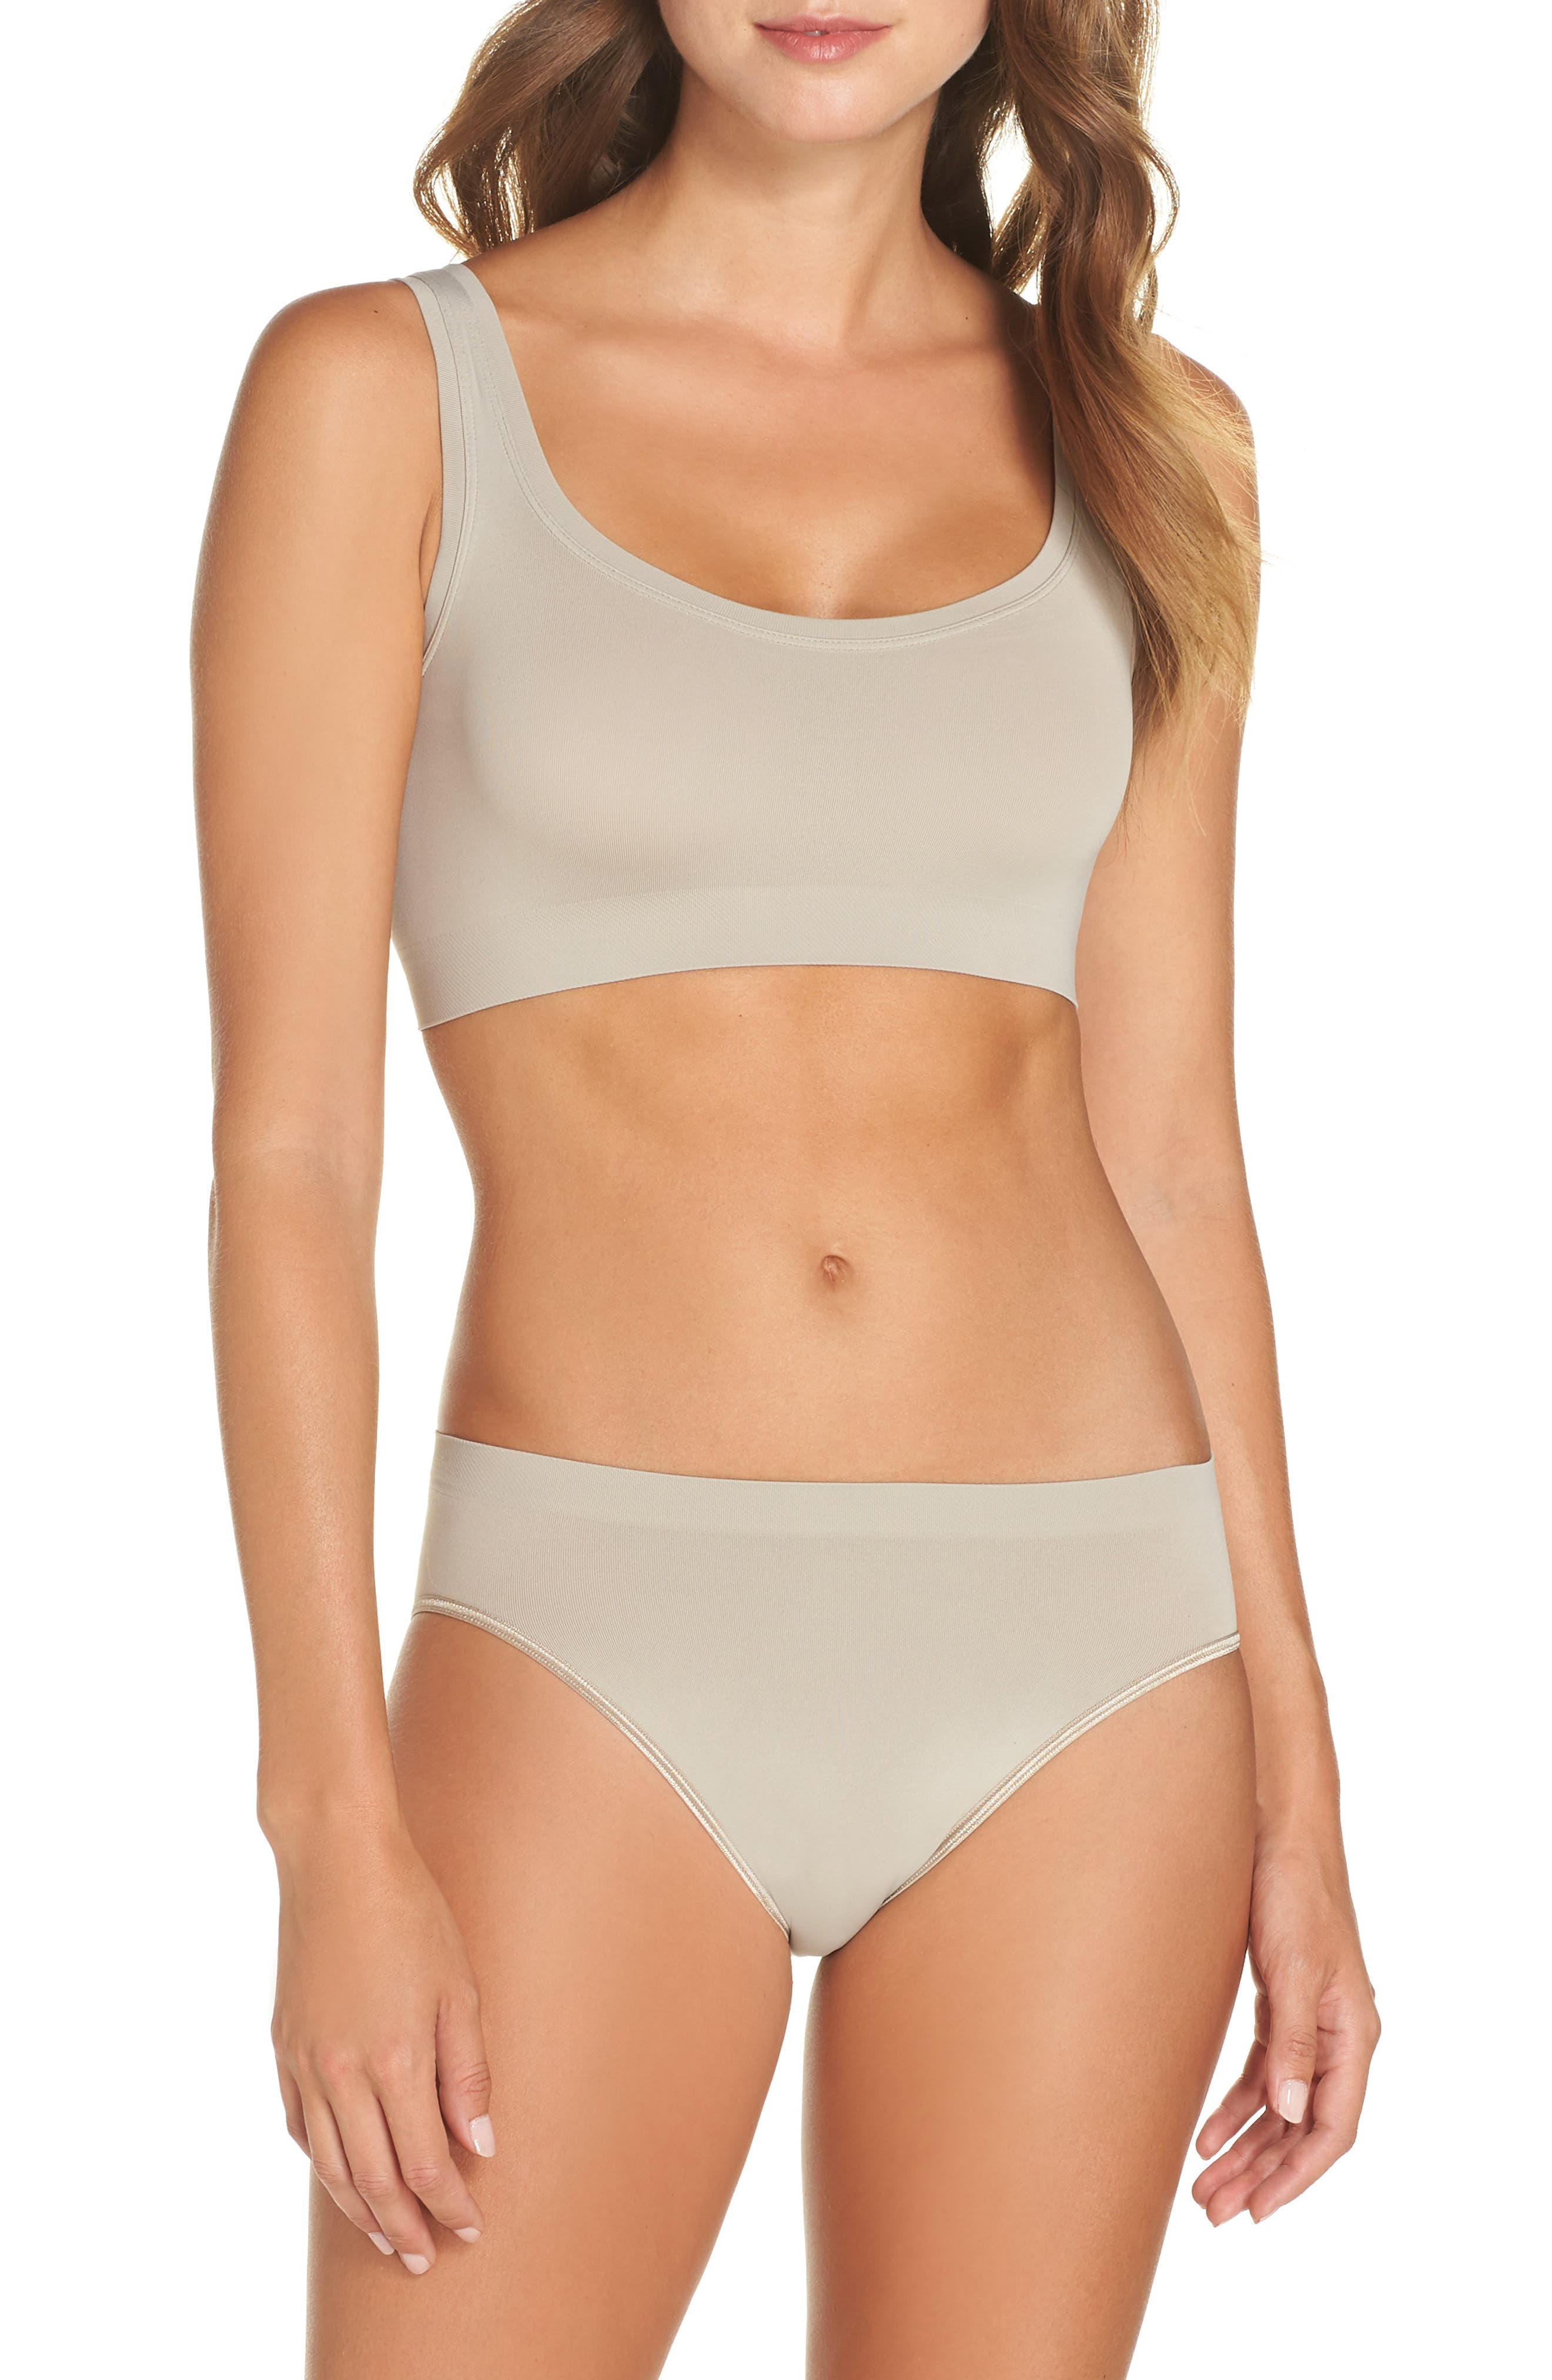 'Touch Feeling' High Cut Briefs,                             Alternate thumbnail 7, color,                             NATURAL STONE